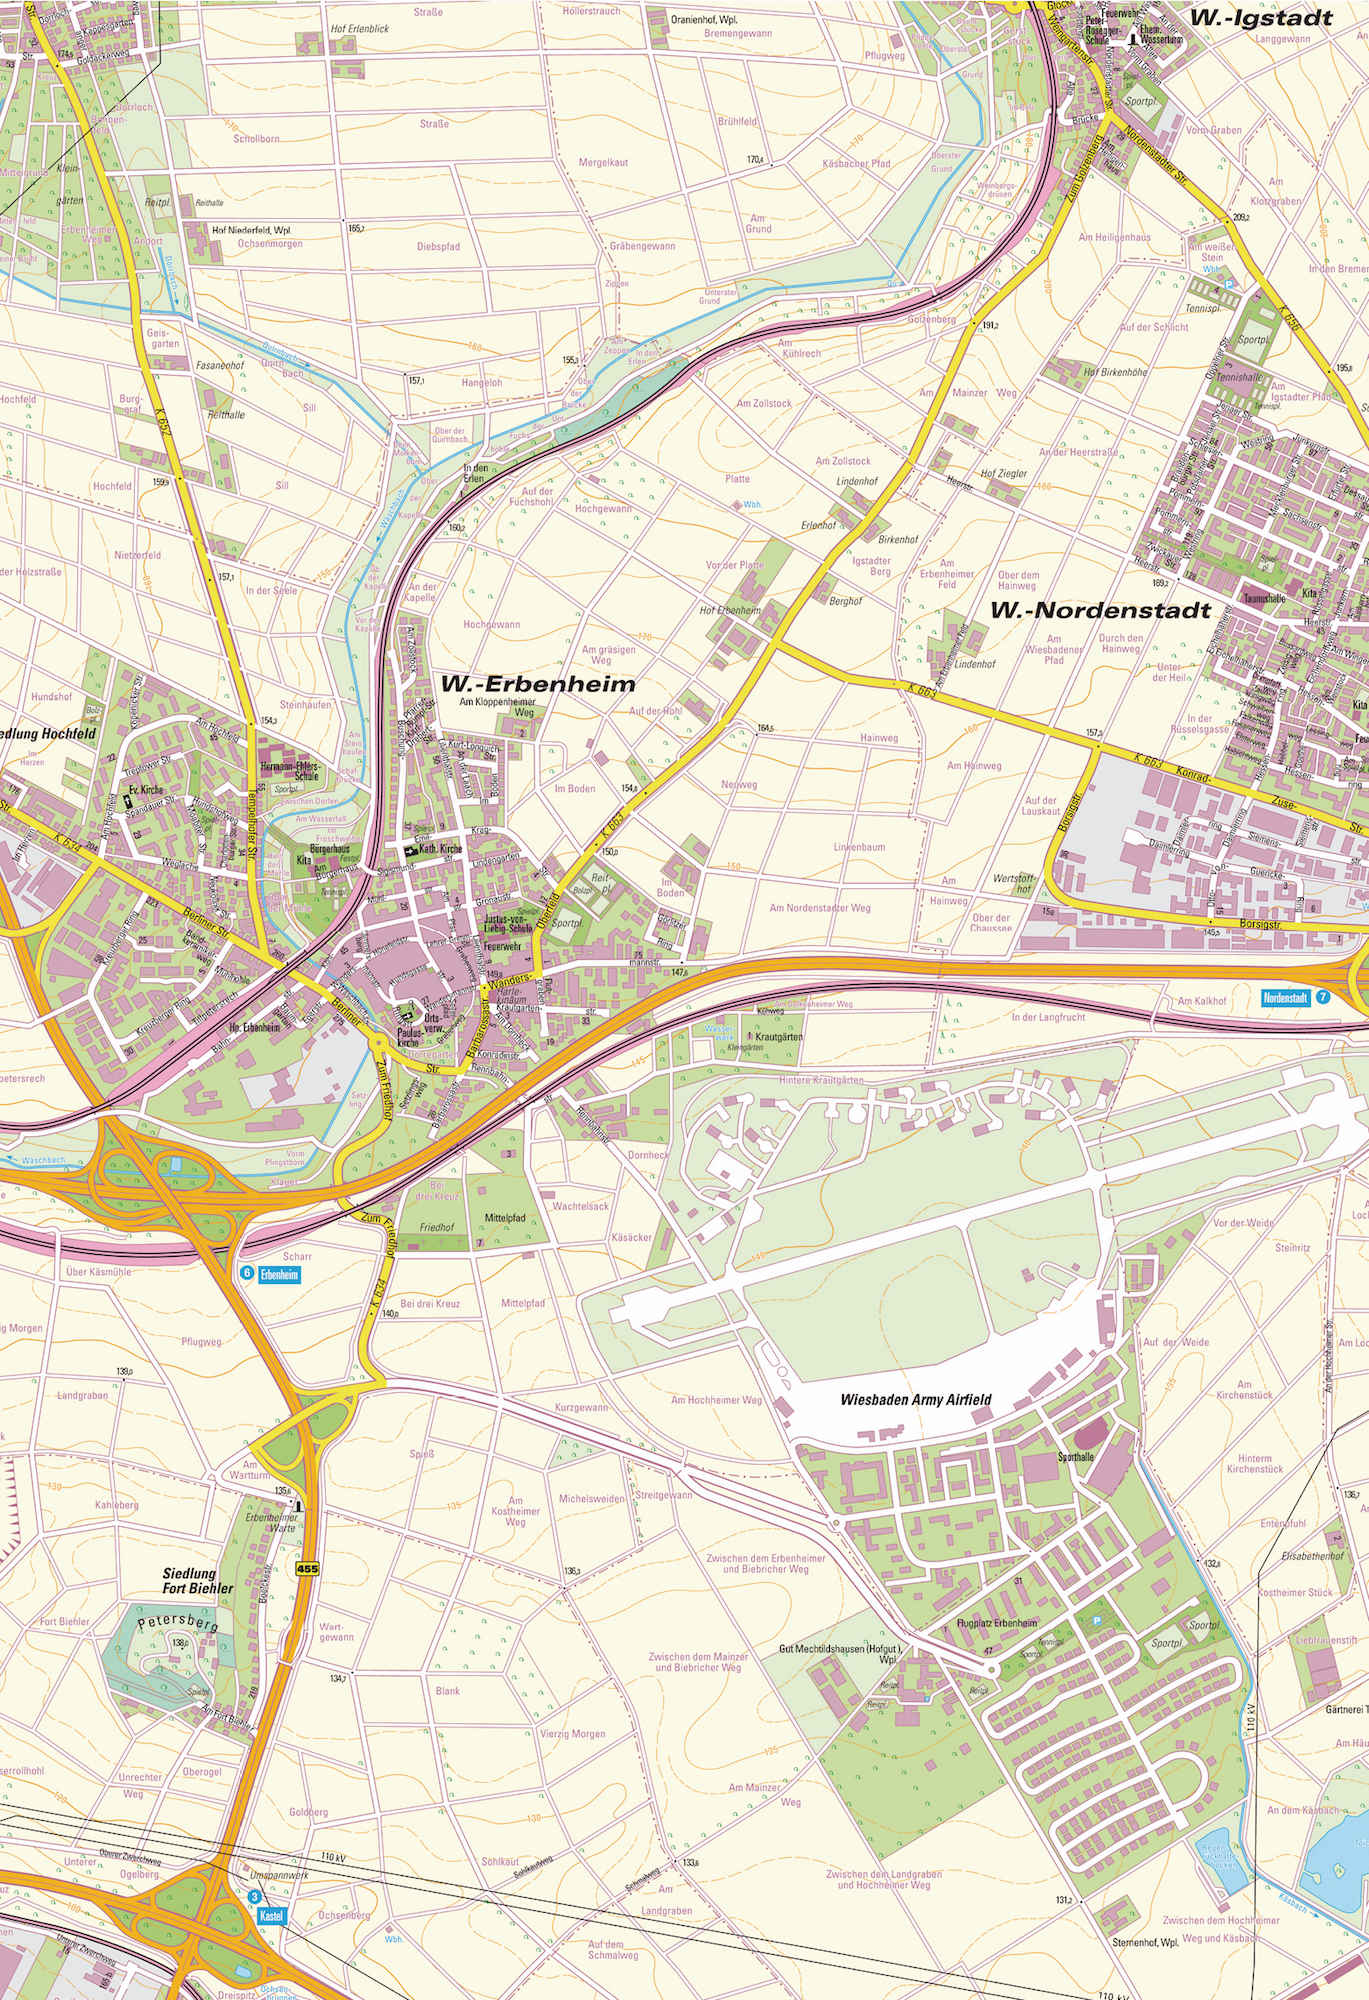 City and Regional Maps - The Find-It Guide - Business and ...